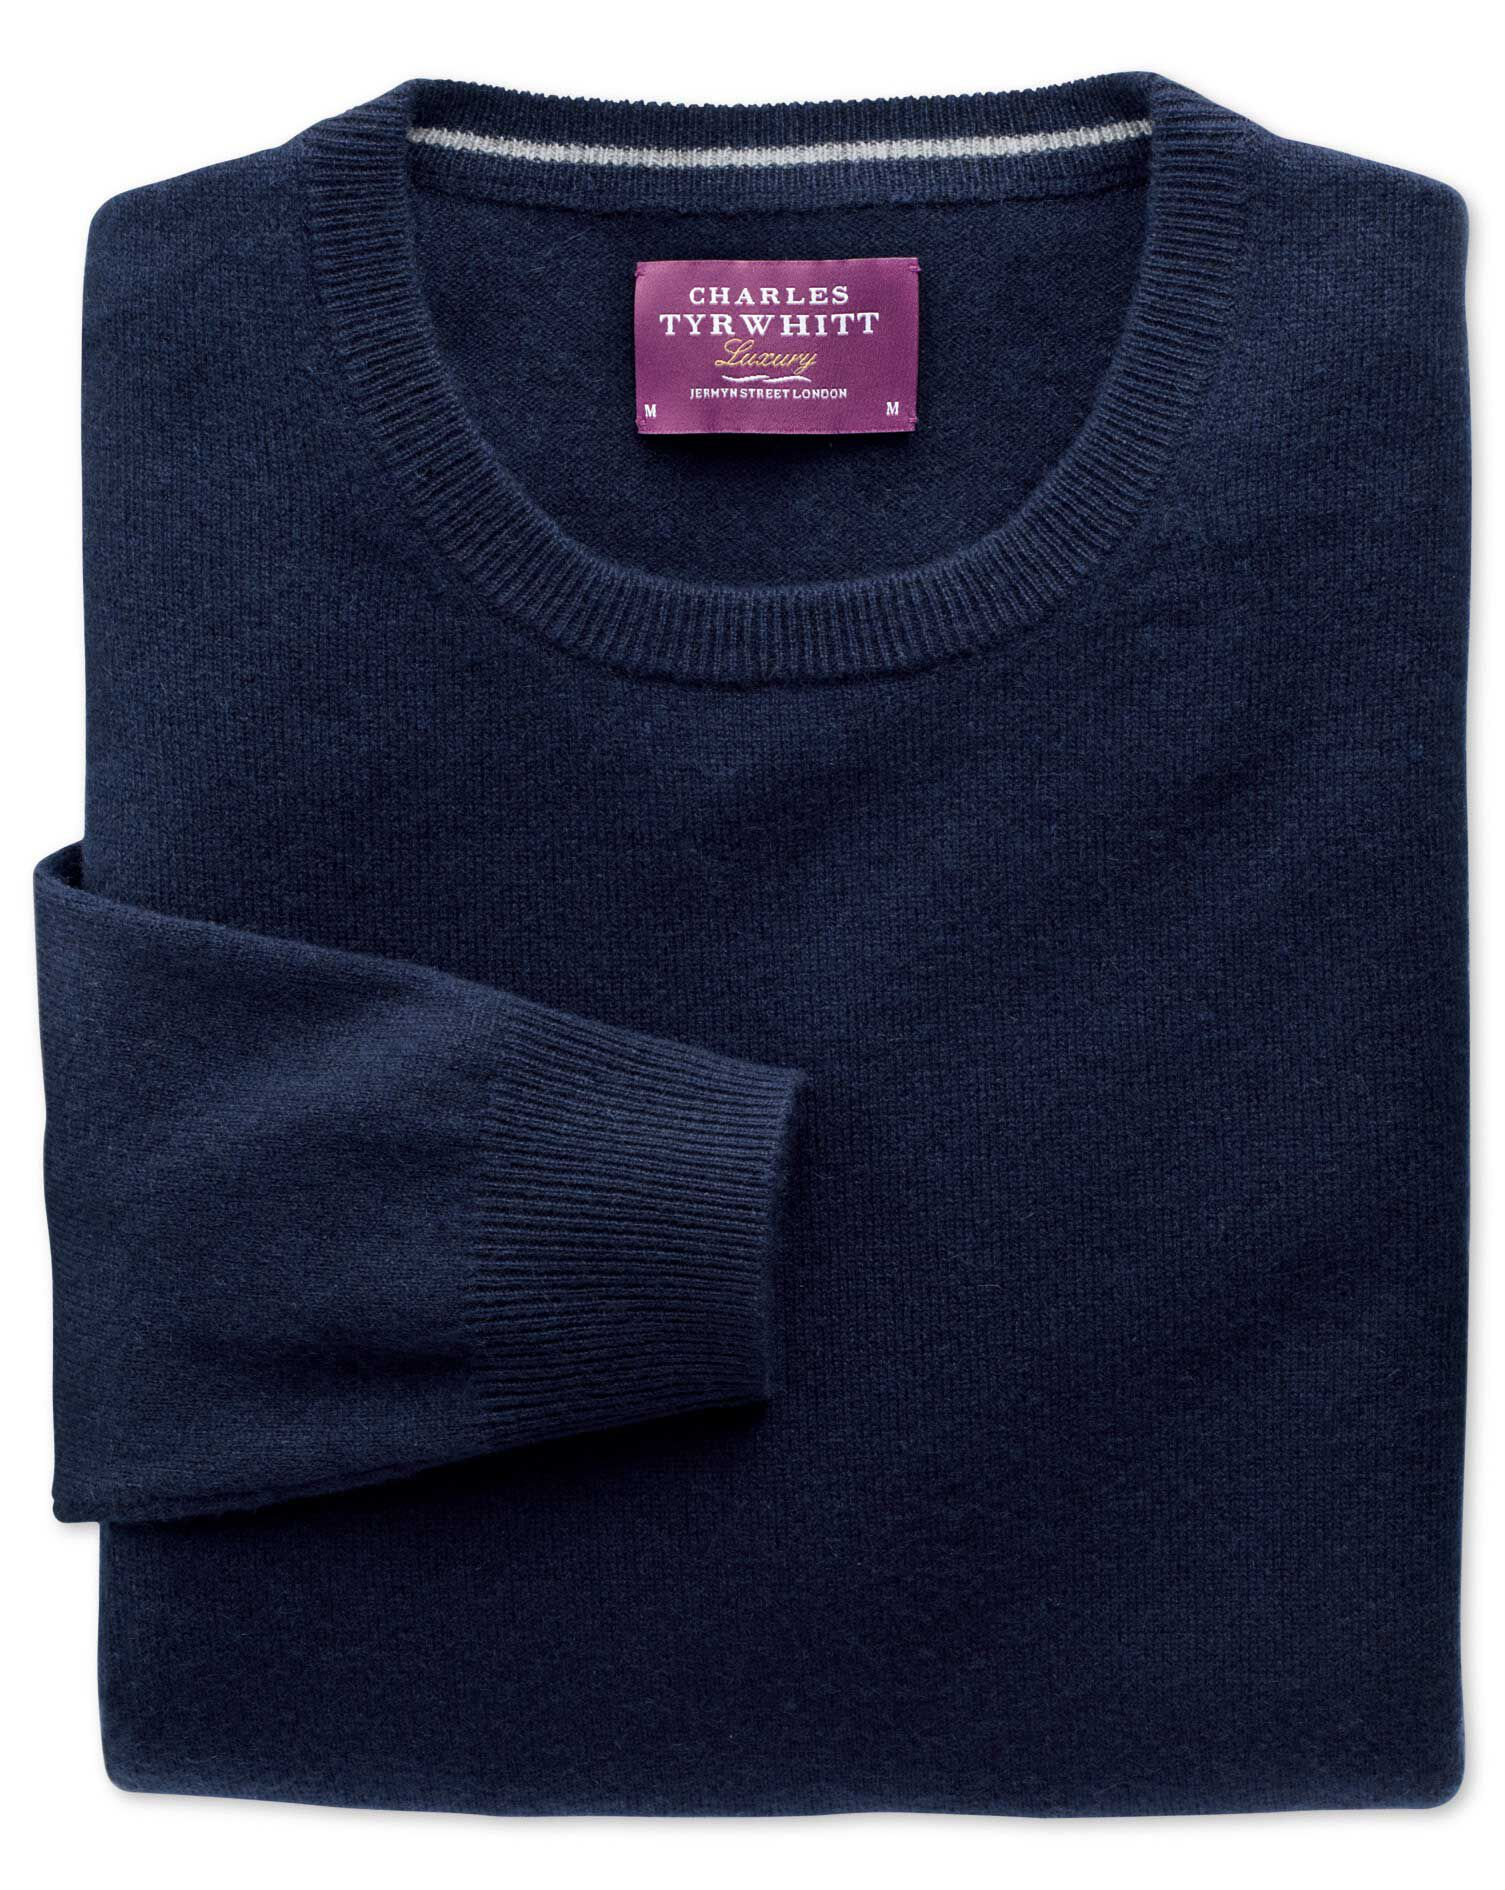 Navy Cashmere Crew Neck Jumper Size Large by Charles Tyrwhitt